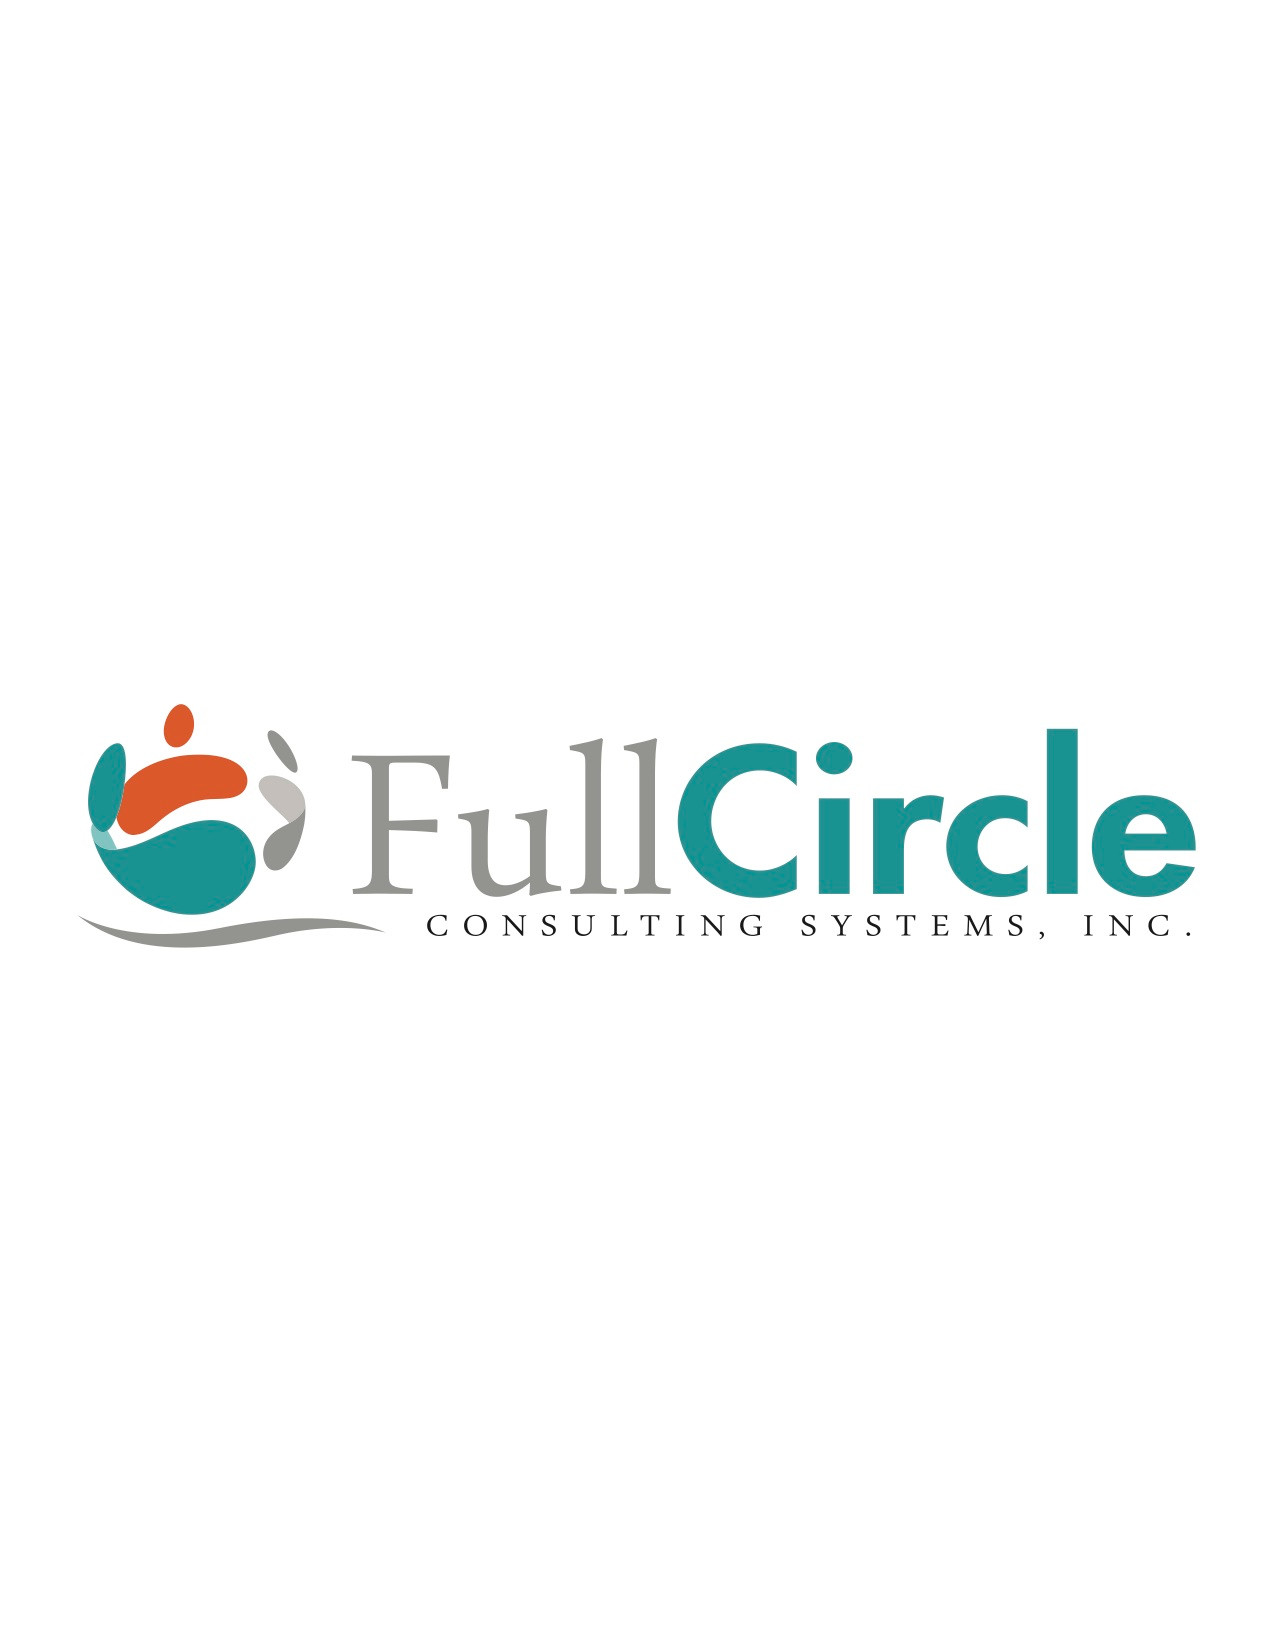 Full Circle Consulting Systems, Inc.